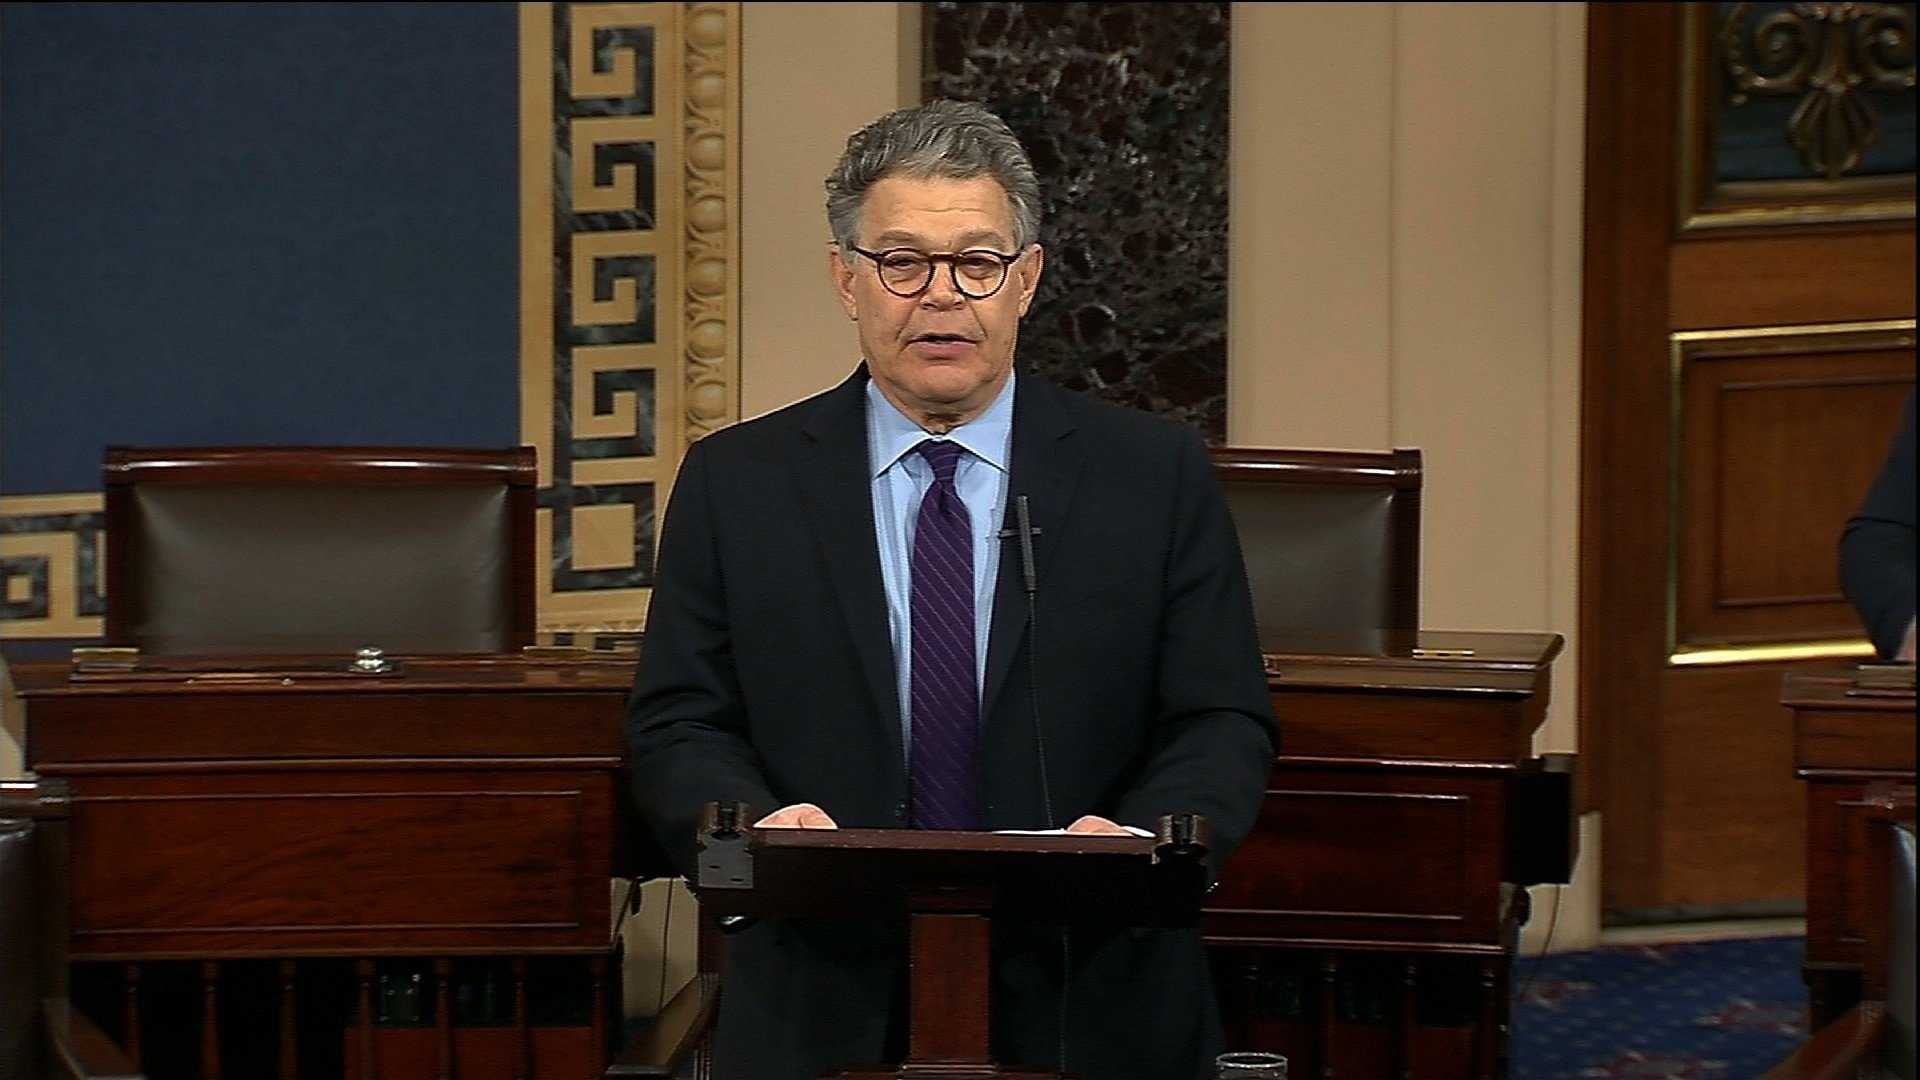 Senator Al Franken announced on Thursday, December 7, 2017, he will be resigning in the coming weeks.